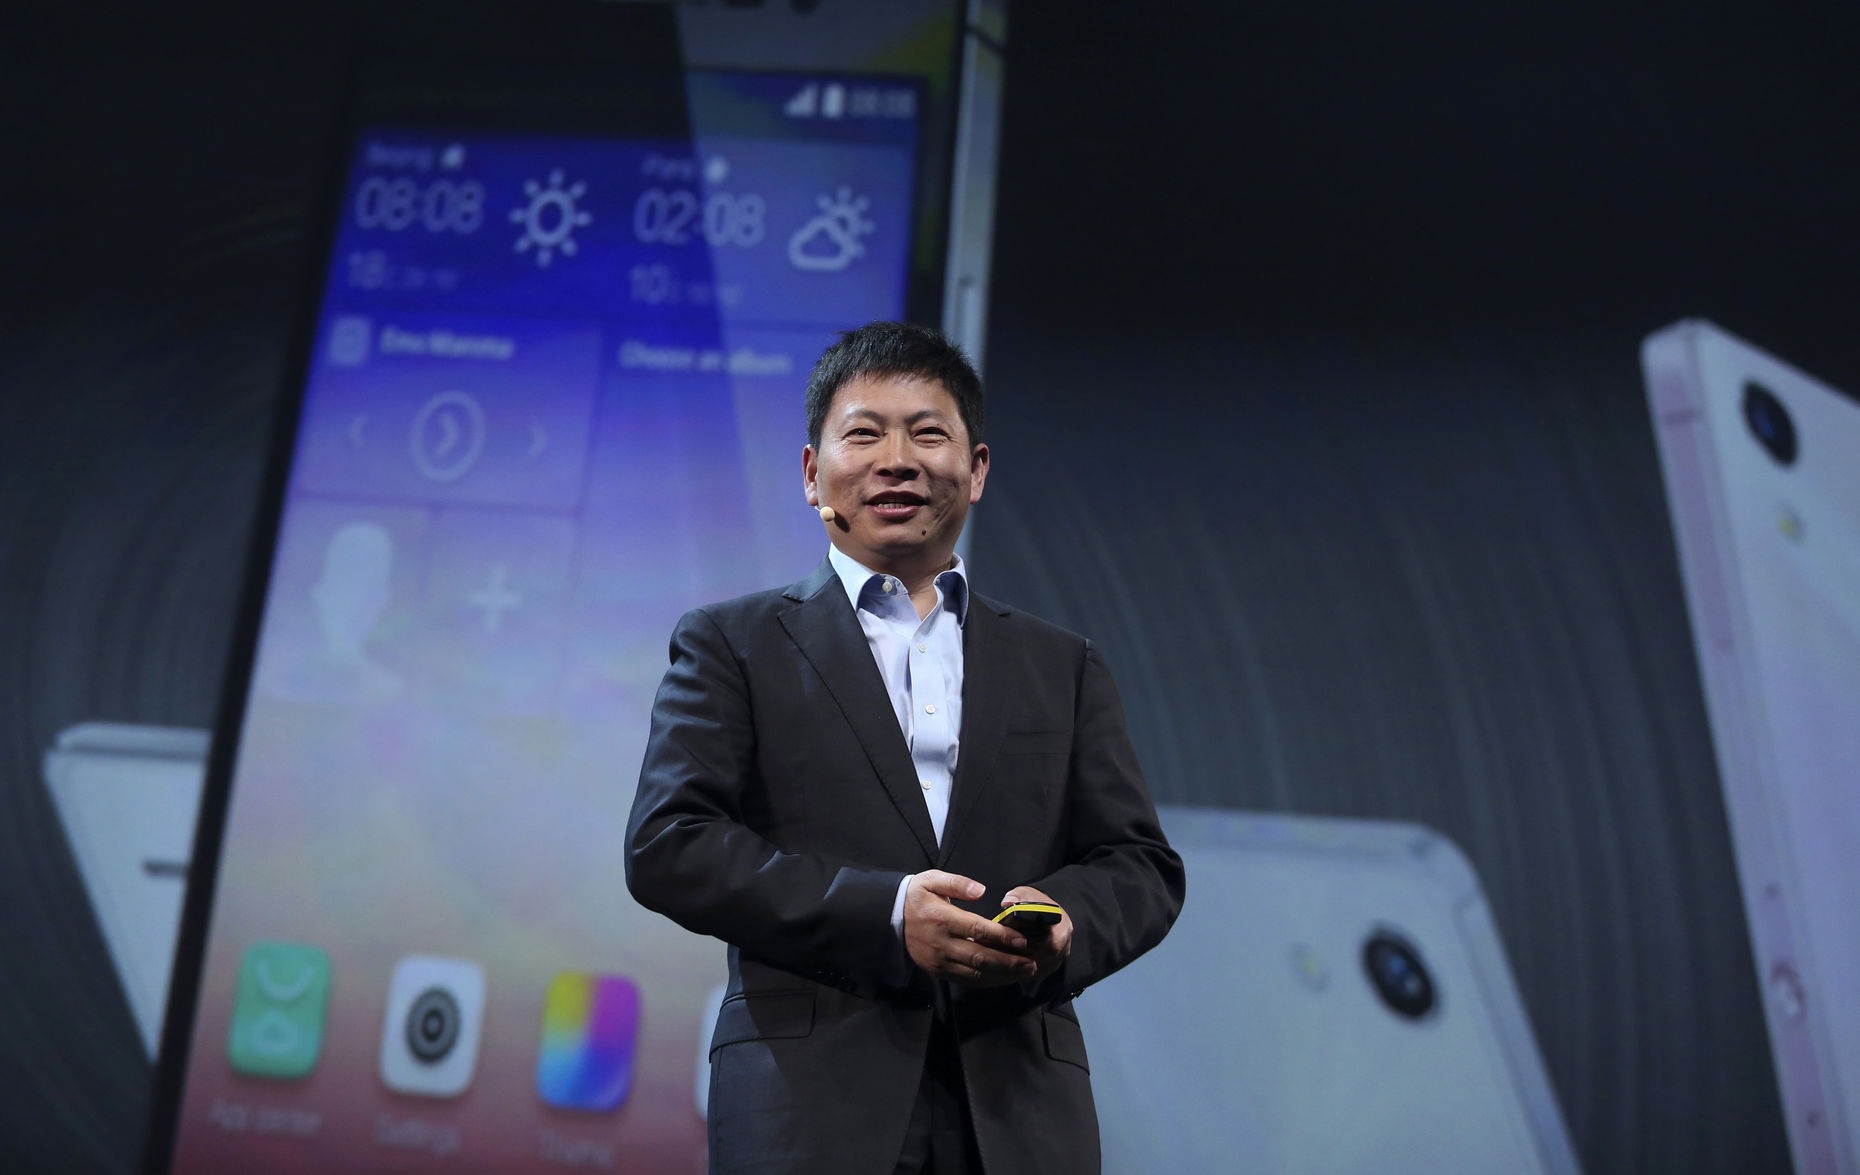 Richard Yu, head of the consumer business for Huawei. Photo by Bloomberg.